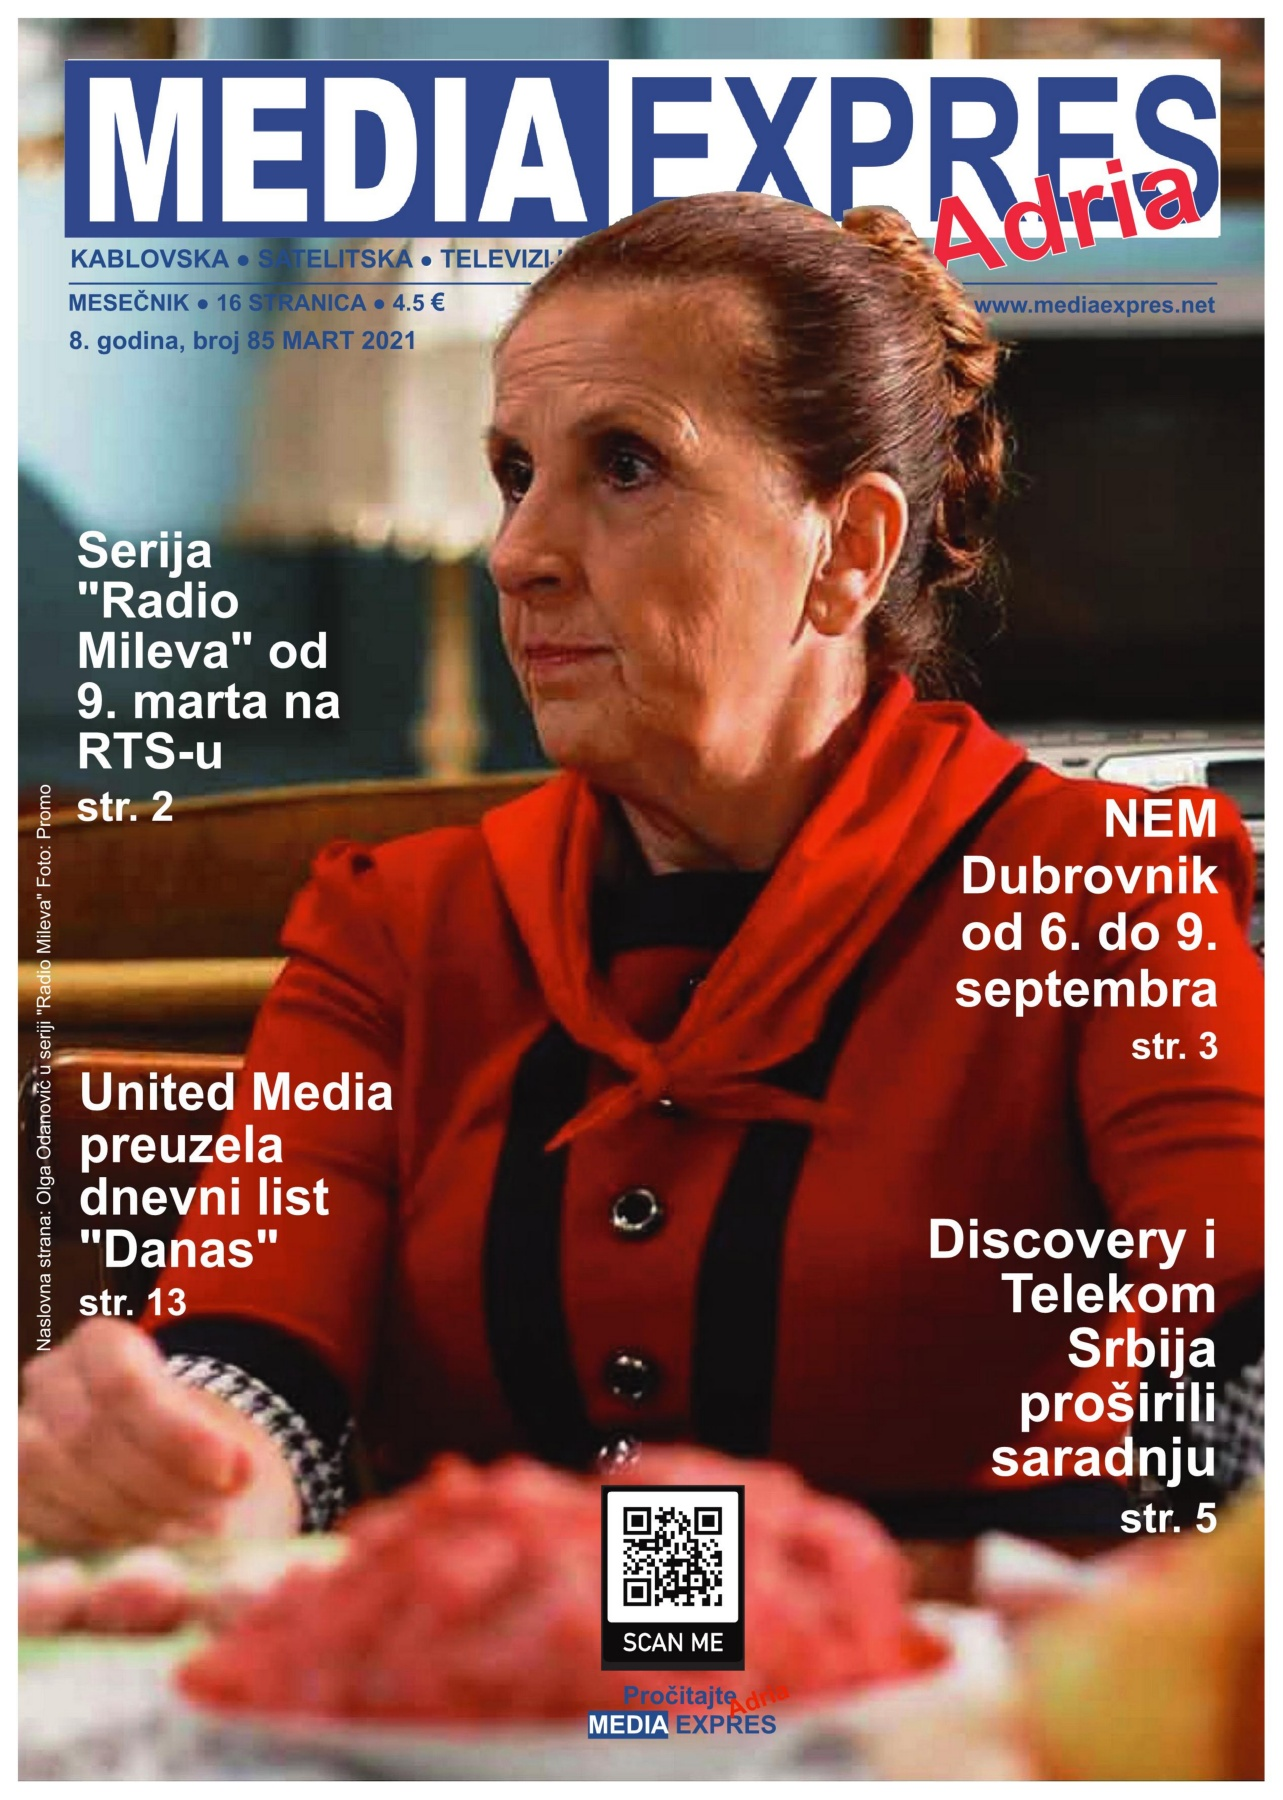 Media Expres Adria No. 3 MART 2021 1st Cover